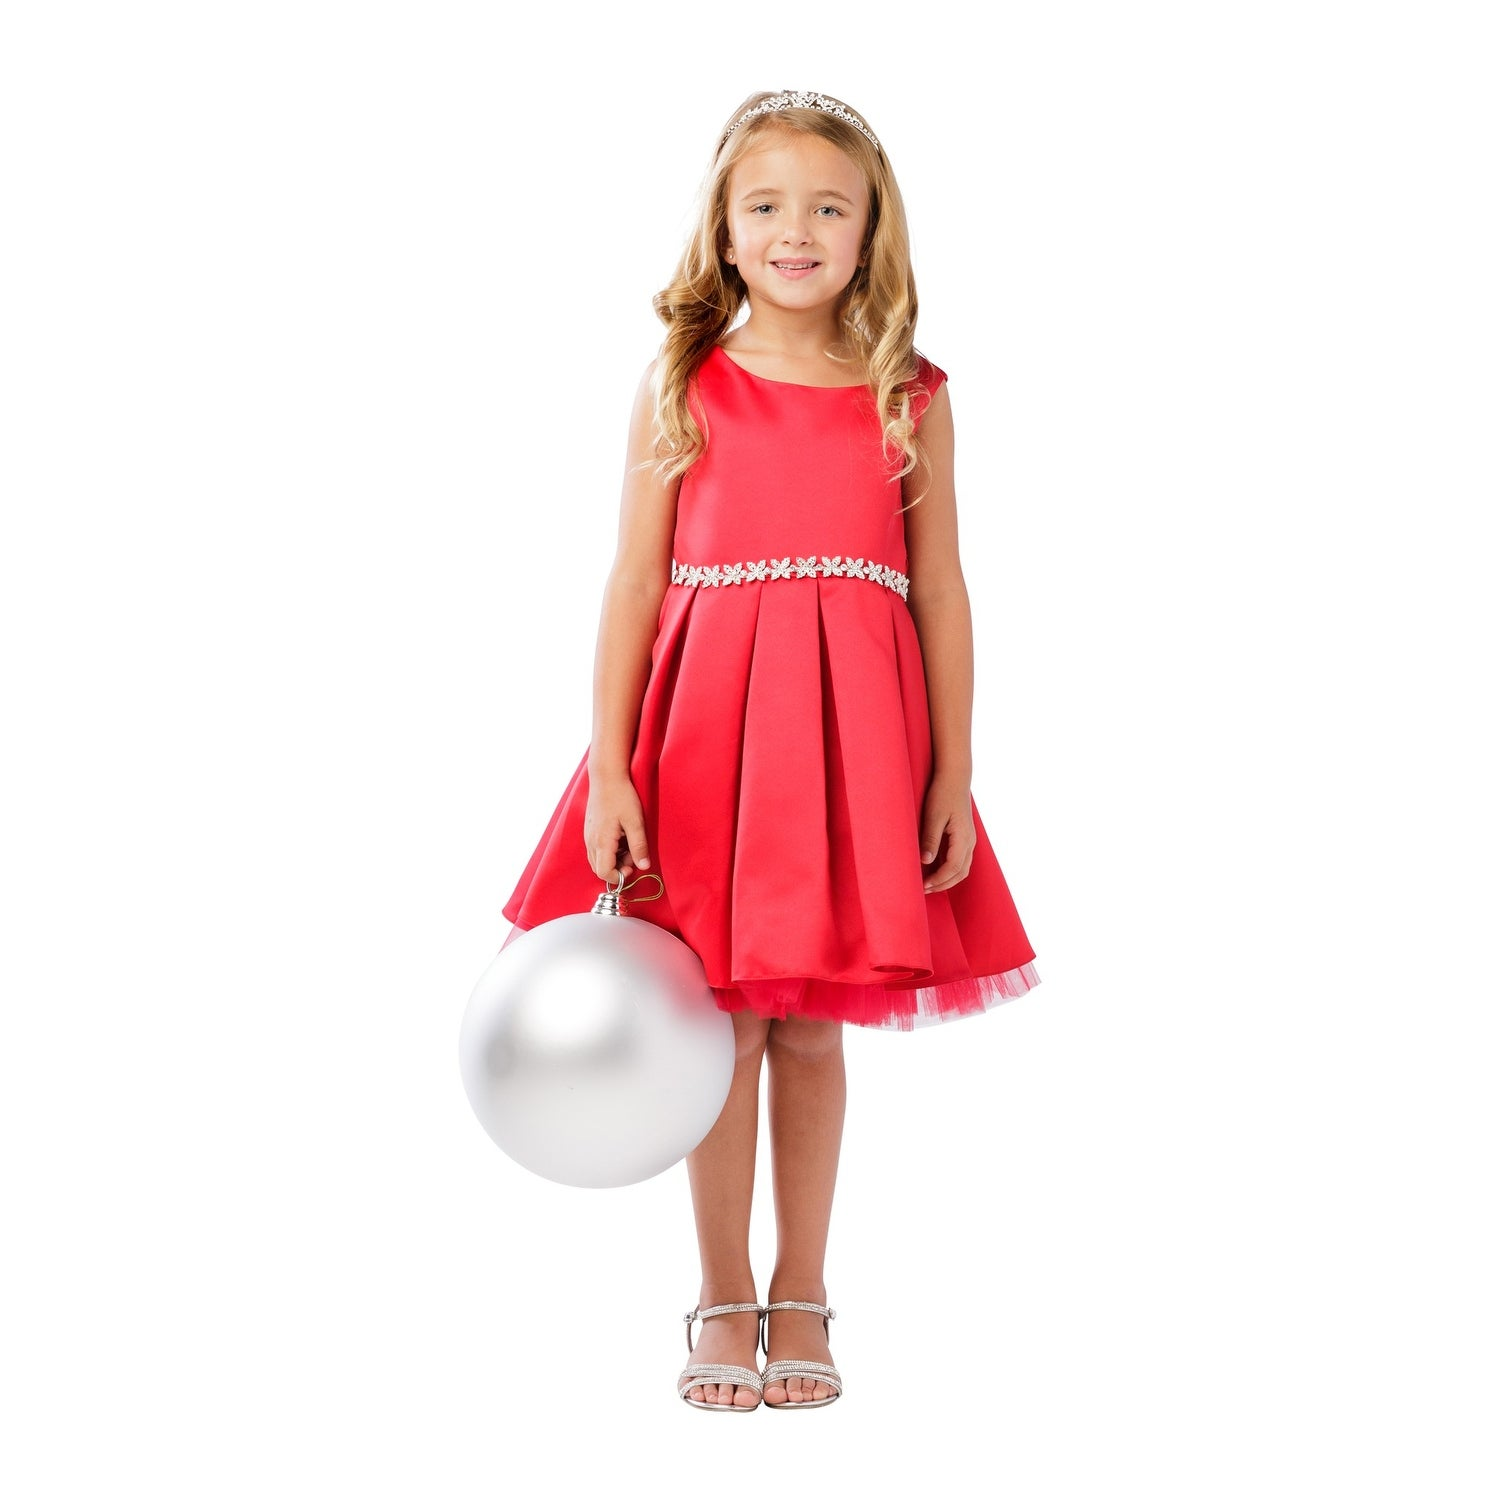 759e4e0c9 Shop Girls Red Rhinestone Tulle Satin Pleated Junior Bridesmaid Dress - Free  Shipping Today - Overstock.com - 21335540